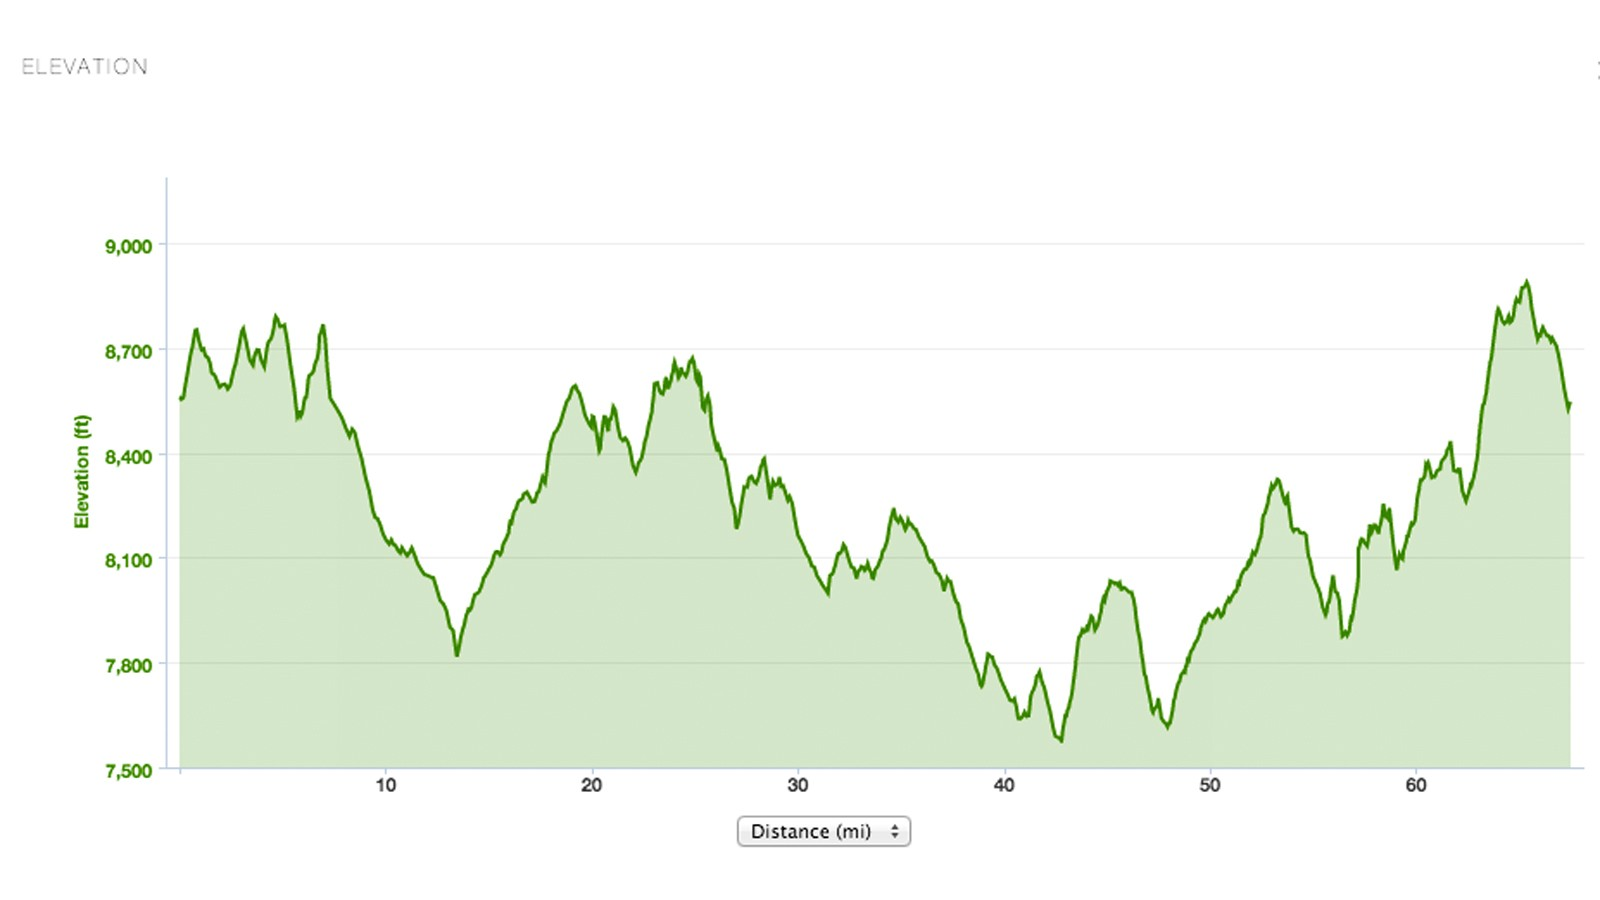 If faced with this sort of course profile for a 111km-long mountain bike race, what sort of bike would you ride?